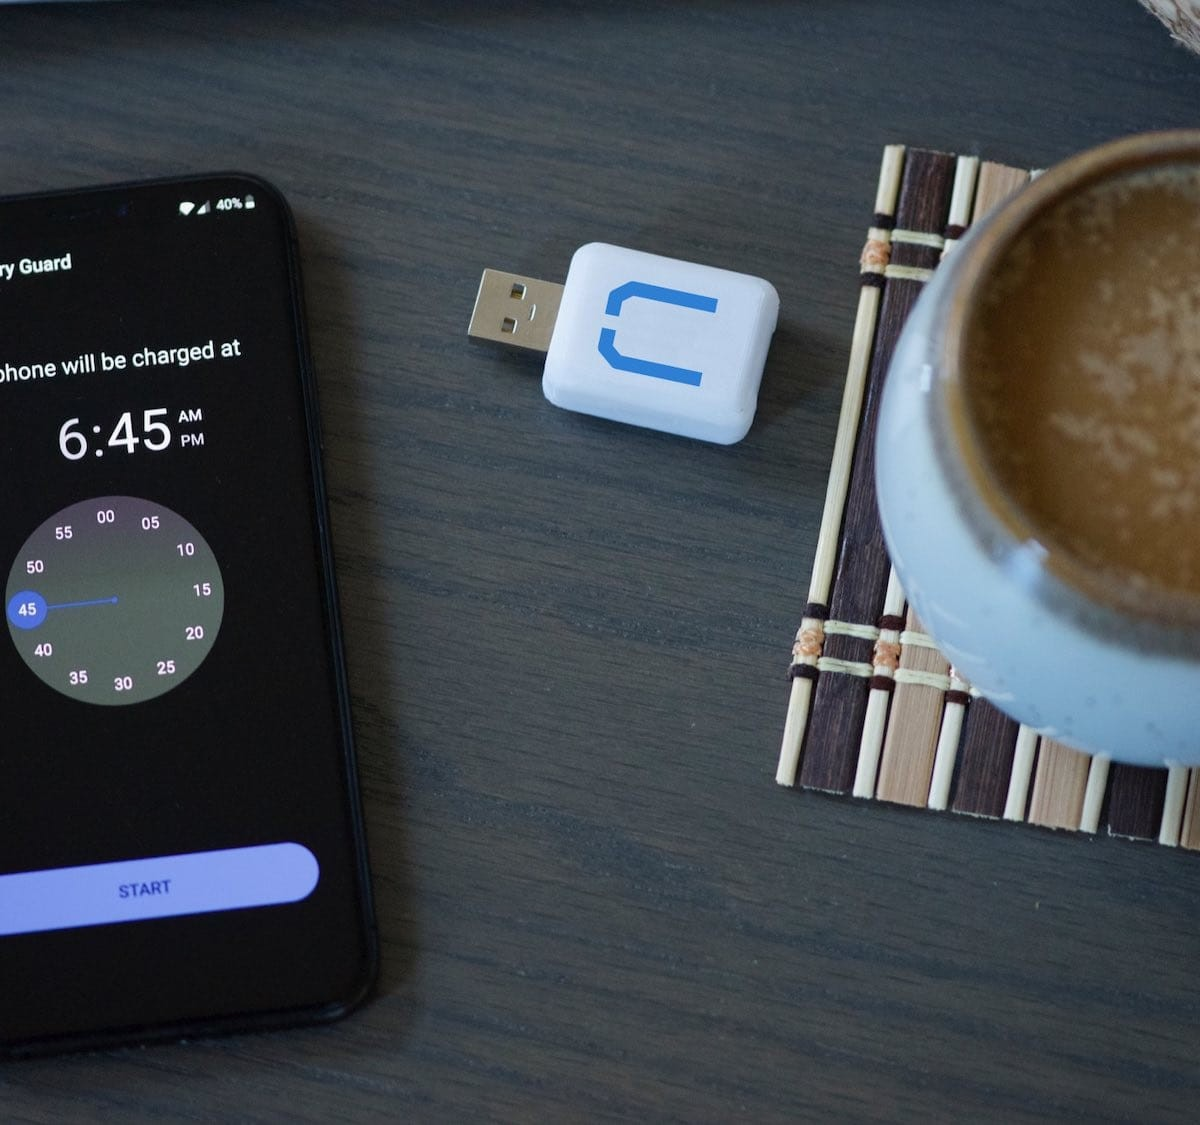 Canal Battery Guard phone battery extender can actually double your phone's lifespan